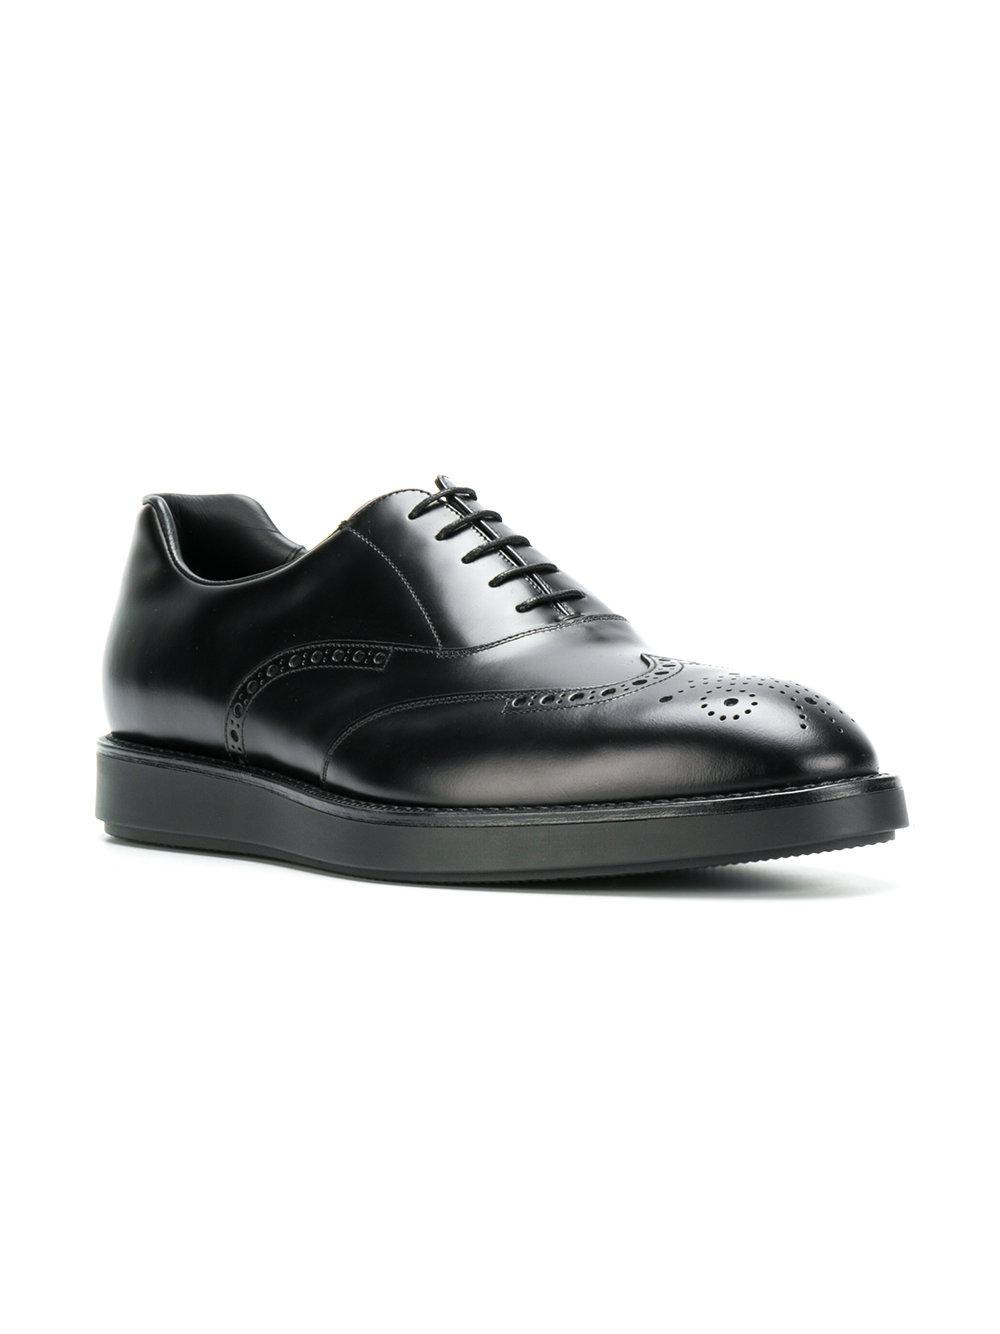 8be56203f446 Prada Lace-up Shoes in Black for Men - Lyst